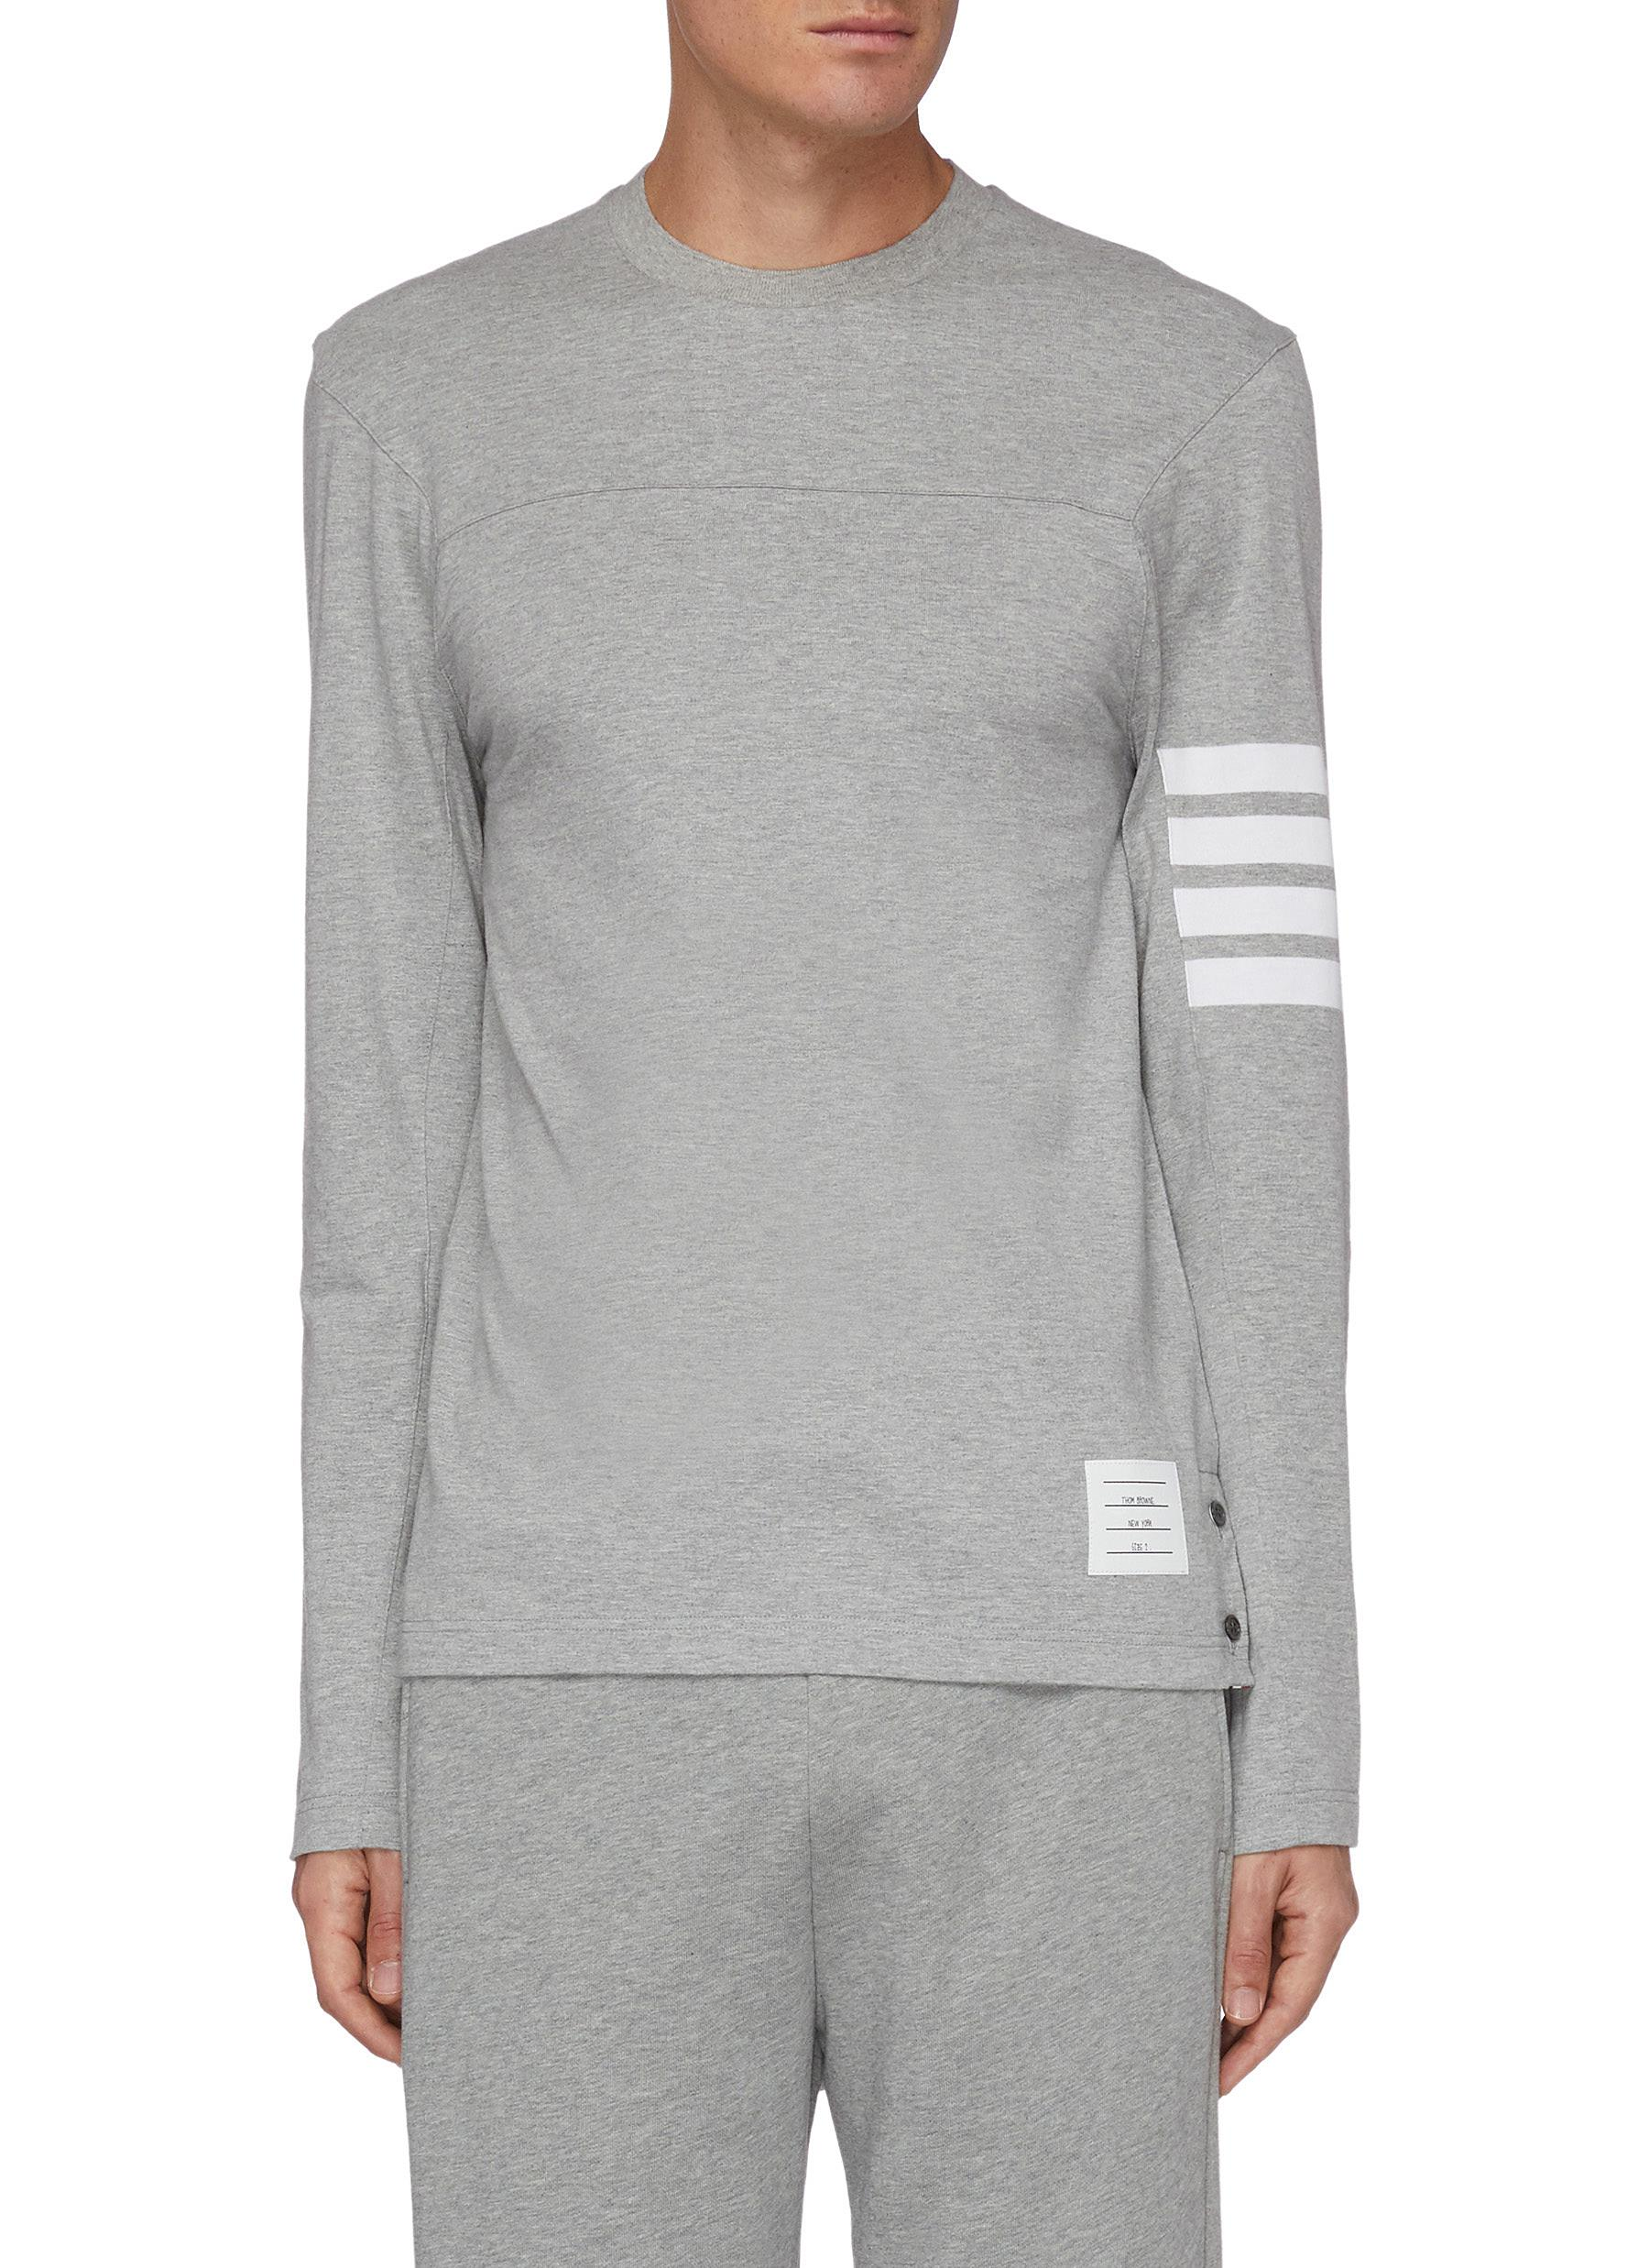 Thom Browne Cottons FOUR BAR STRIPE LONG SLEEVE T-SHIRT